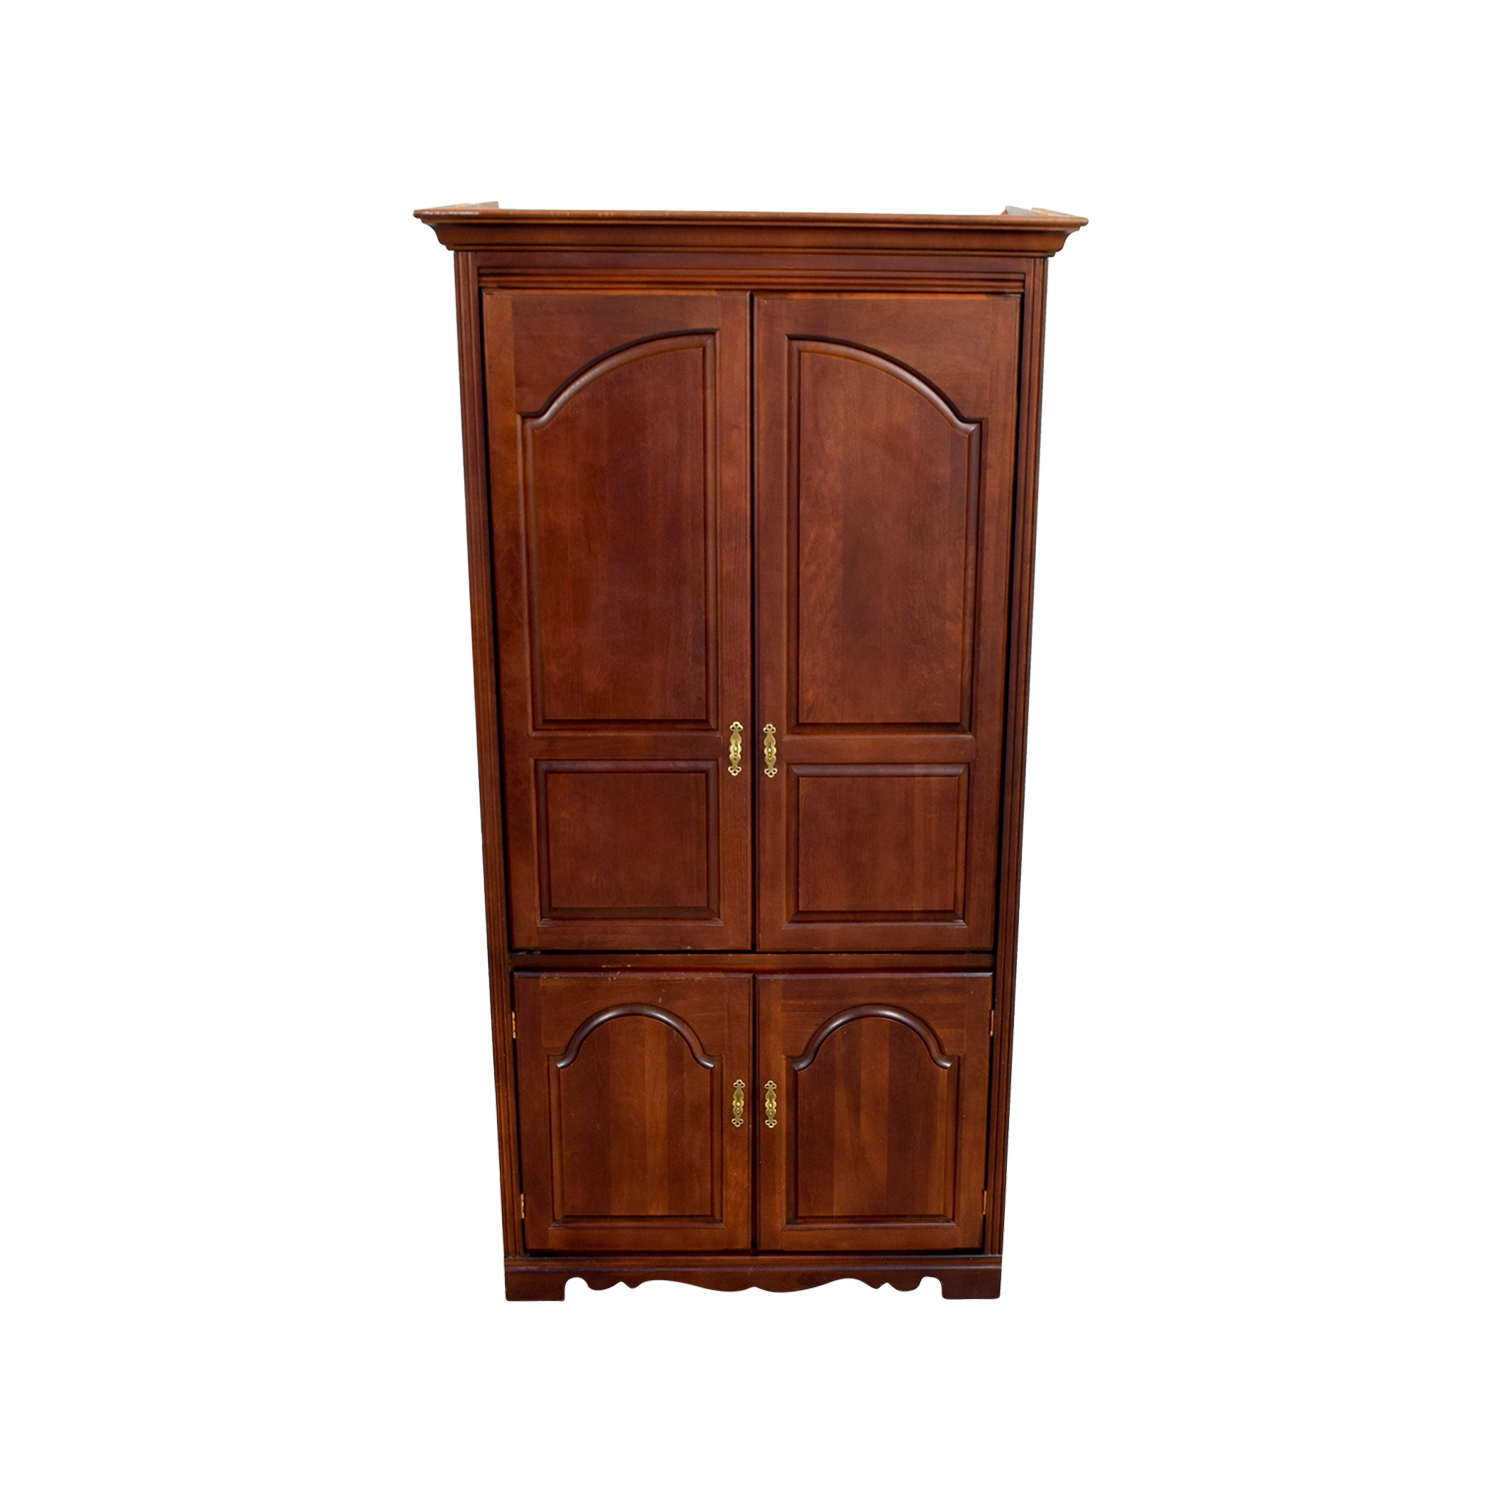 Tv Armoire For Sale 28 Images Armoire Tv Armoire Pocket Doors Corner With Single Door